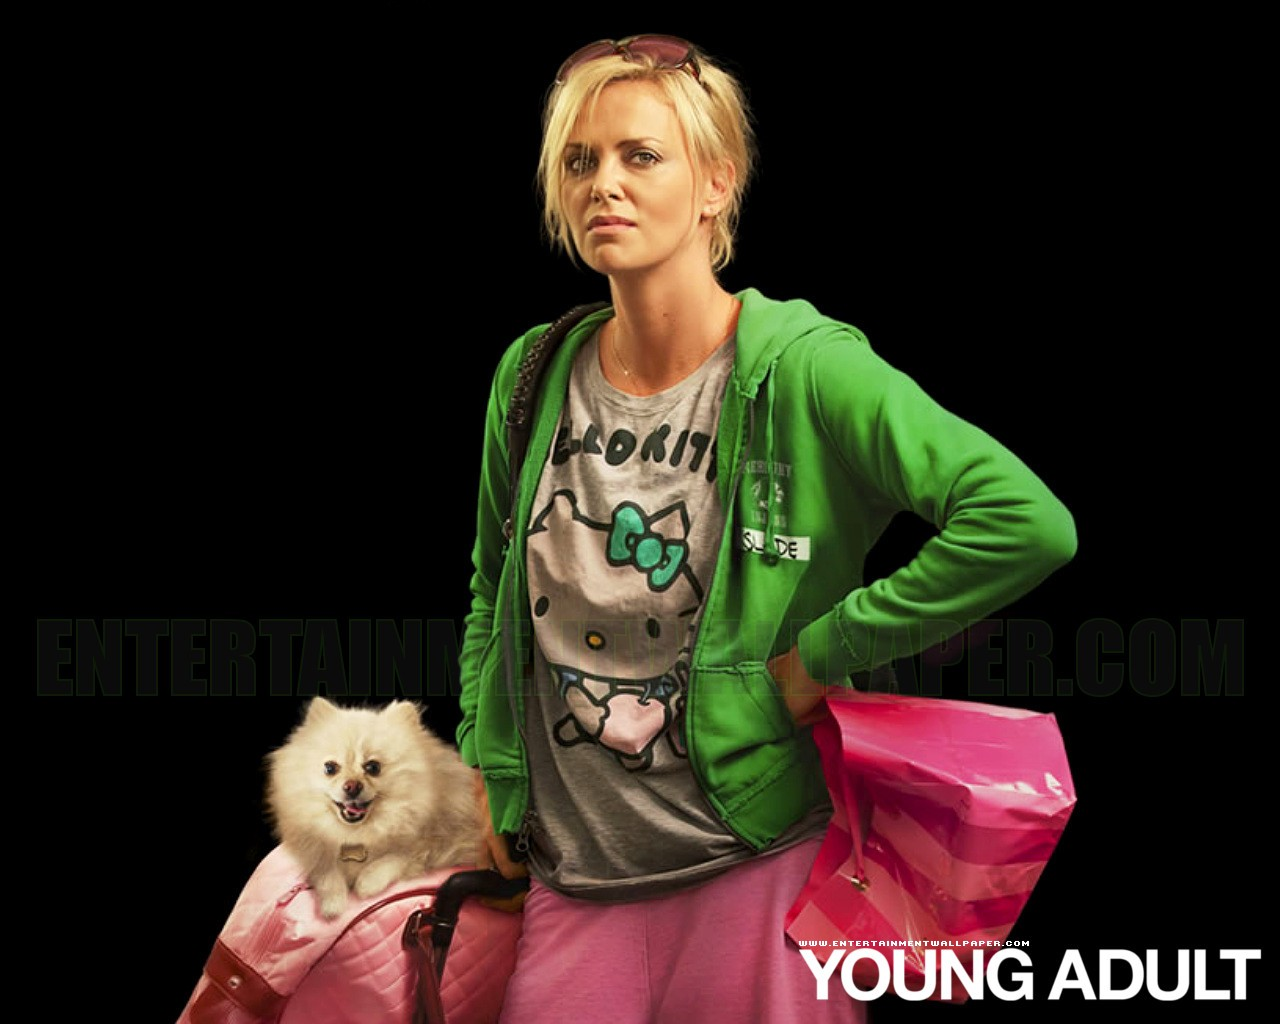 new celebrity weights: young adult movie hot wallpaper 2011 hd get free